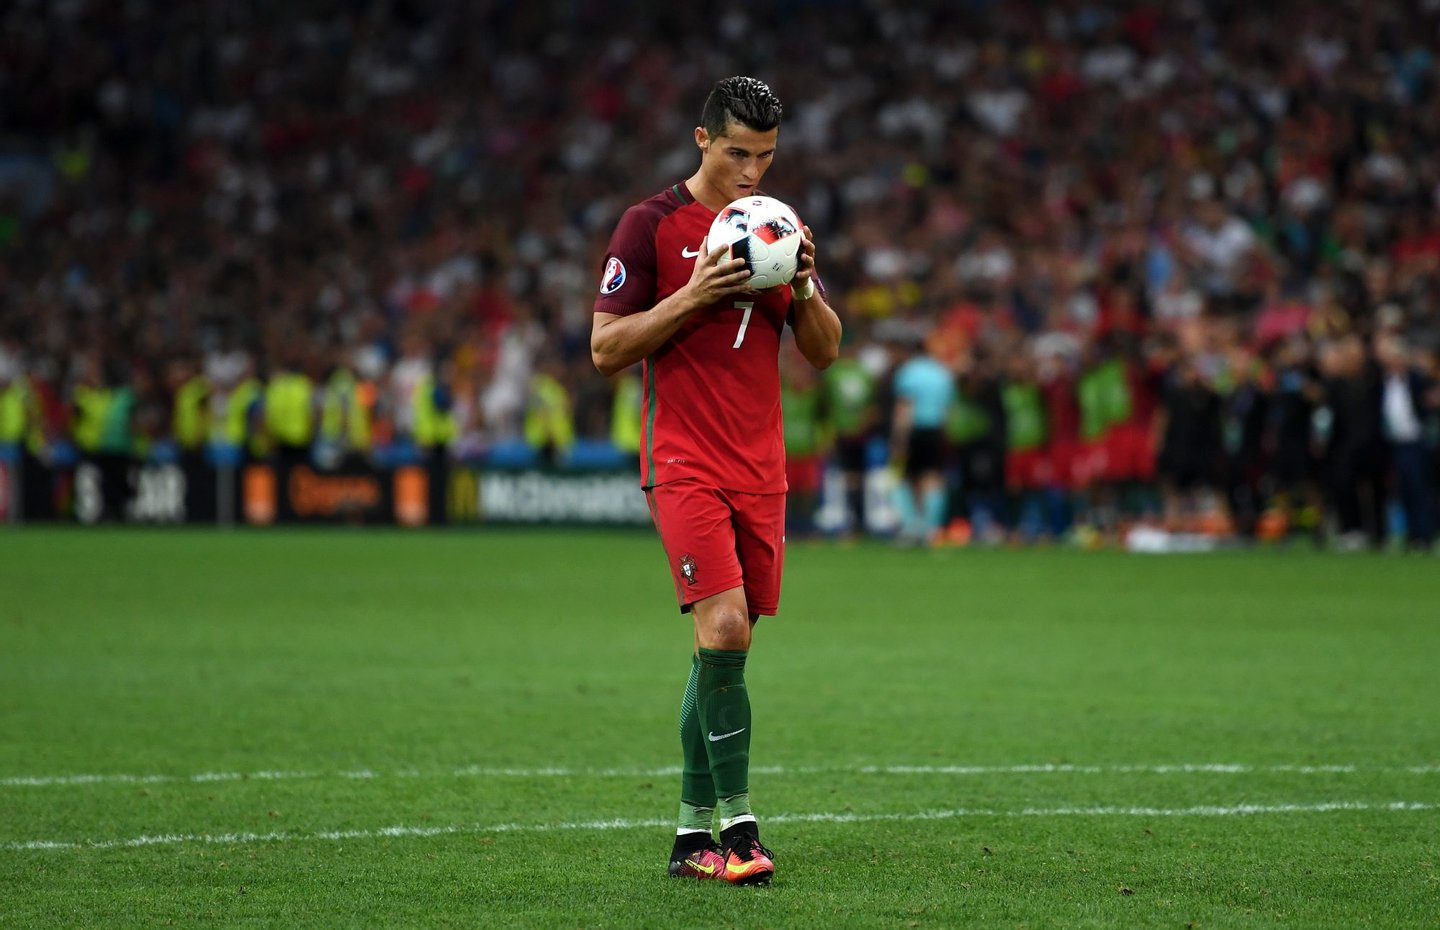 MARSEILLE, FRANCE - JUNE 30: Cristiano Ronaldo of Portugal kisses the ball at the penalty shootout during the UEFA EURO 2016 quarter final match between Poland and Portugal at Stade Velodrome on June 30, 2016 in Marseille, France. (Photo by Laurence Griffiths/Getty Images)